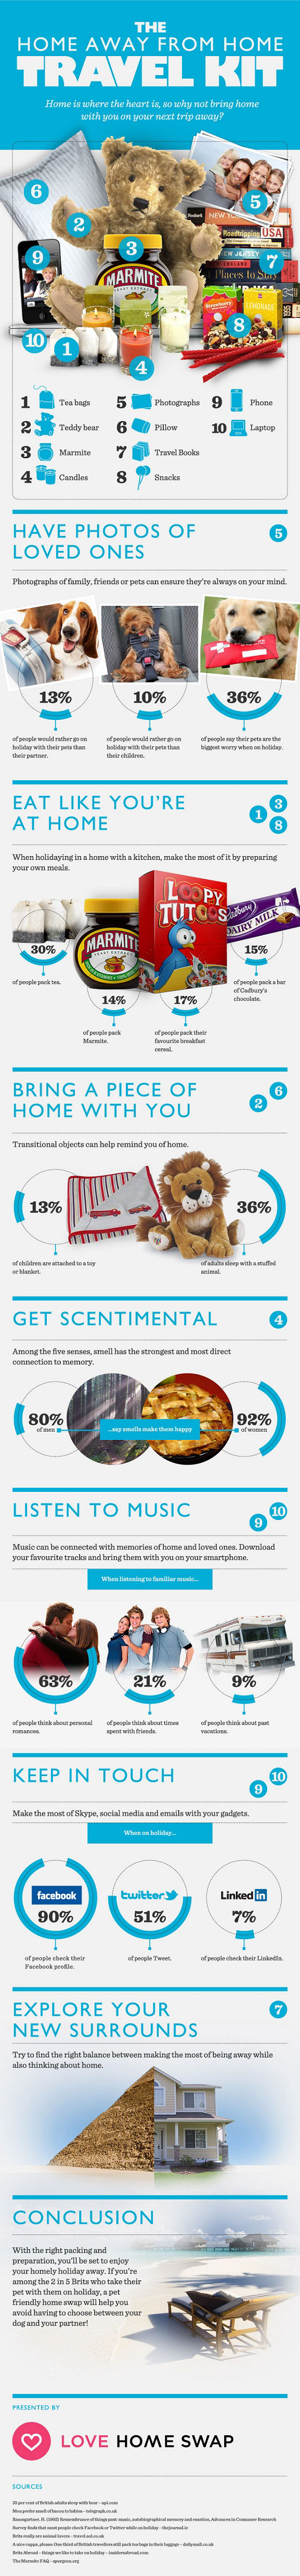 Take Home on Holiday-Infographic